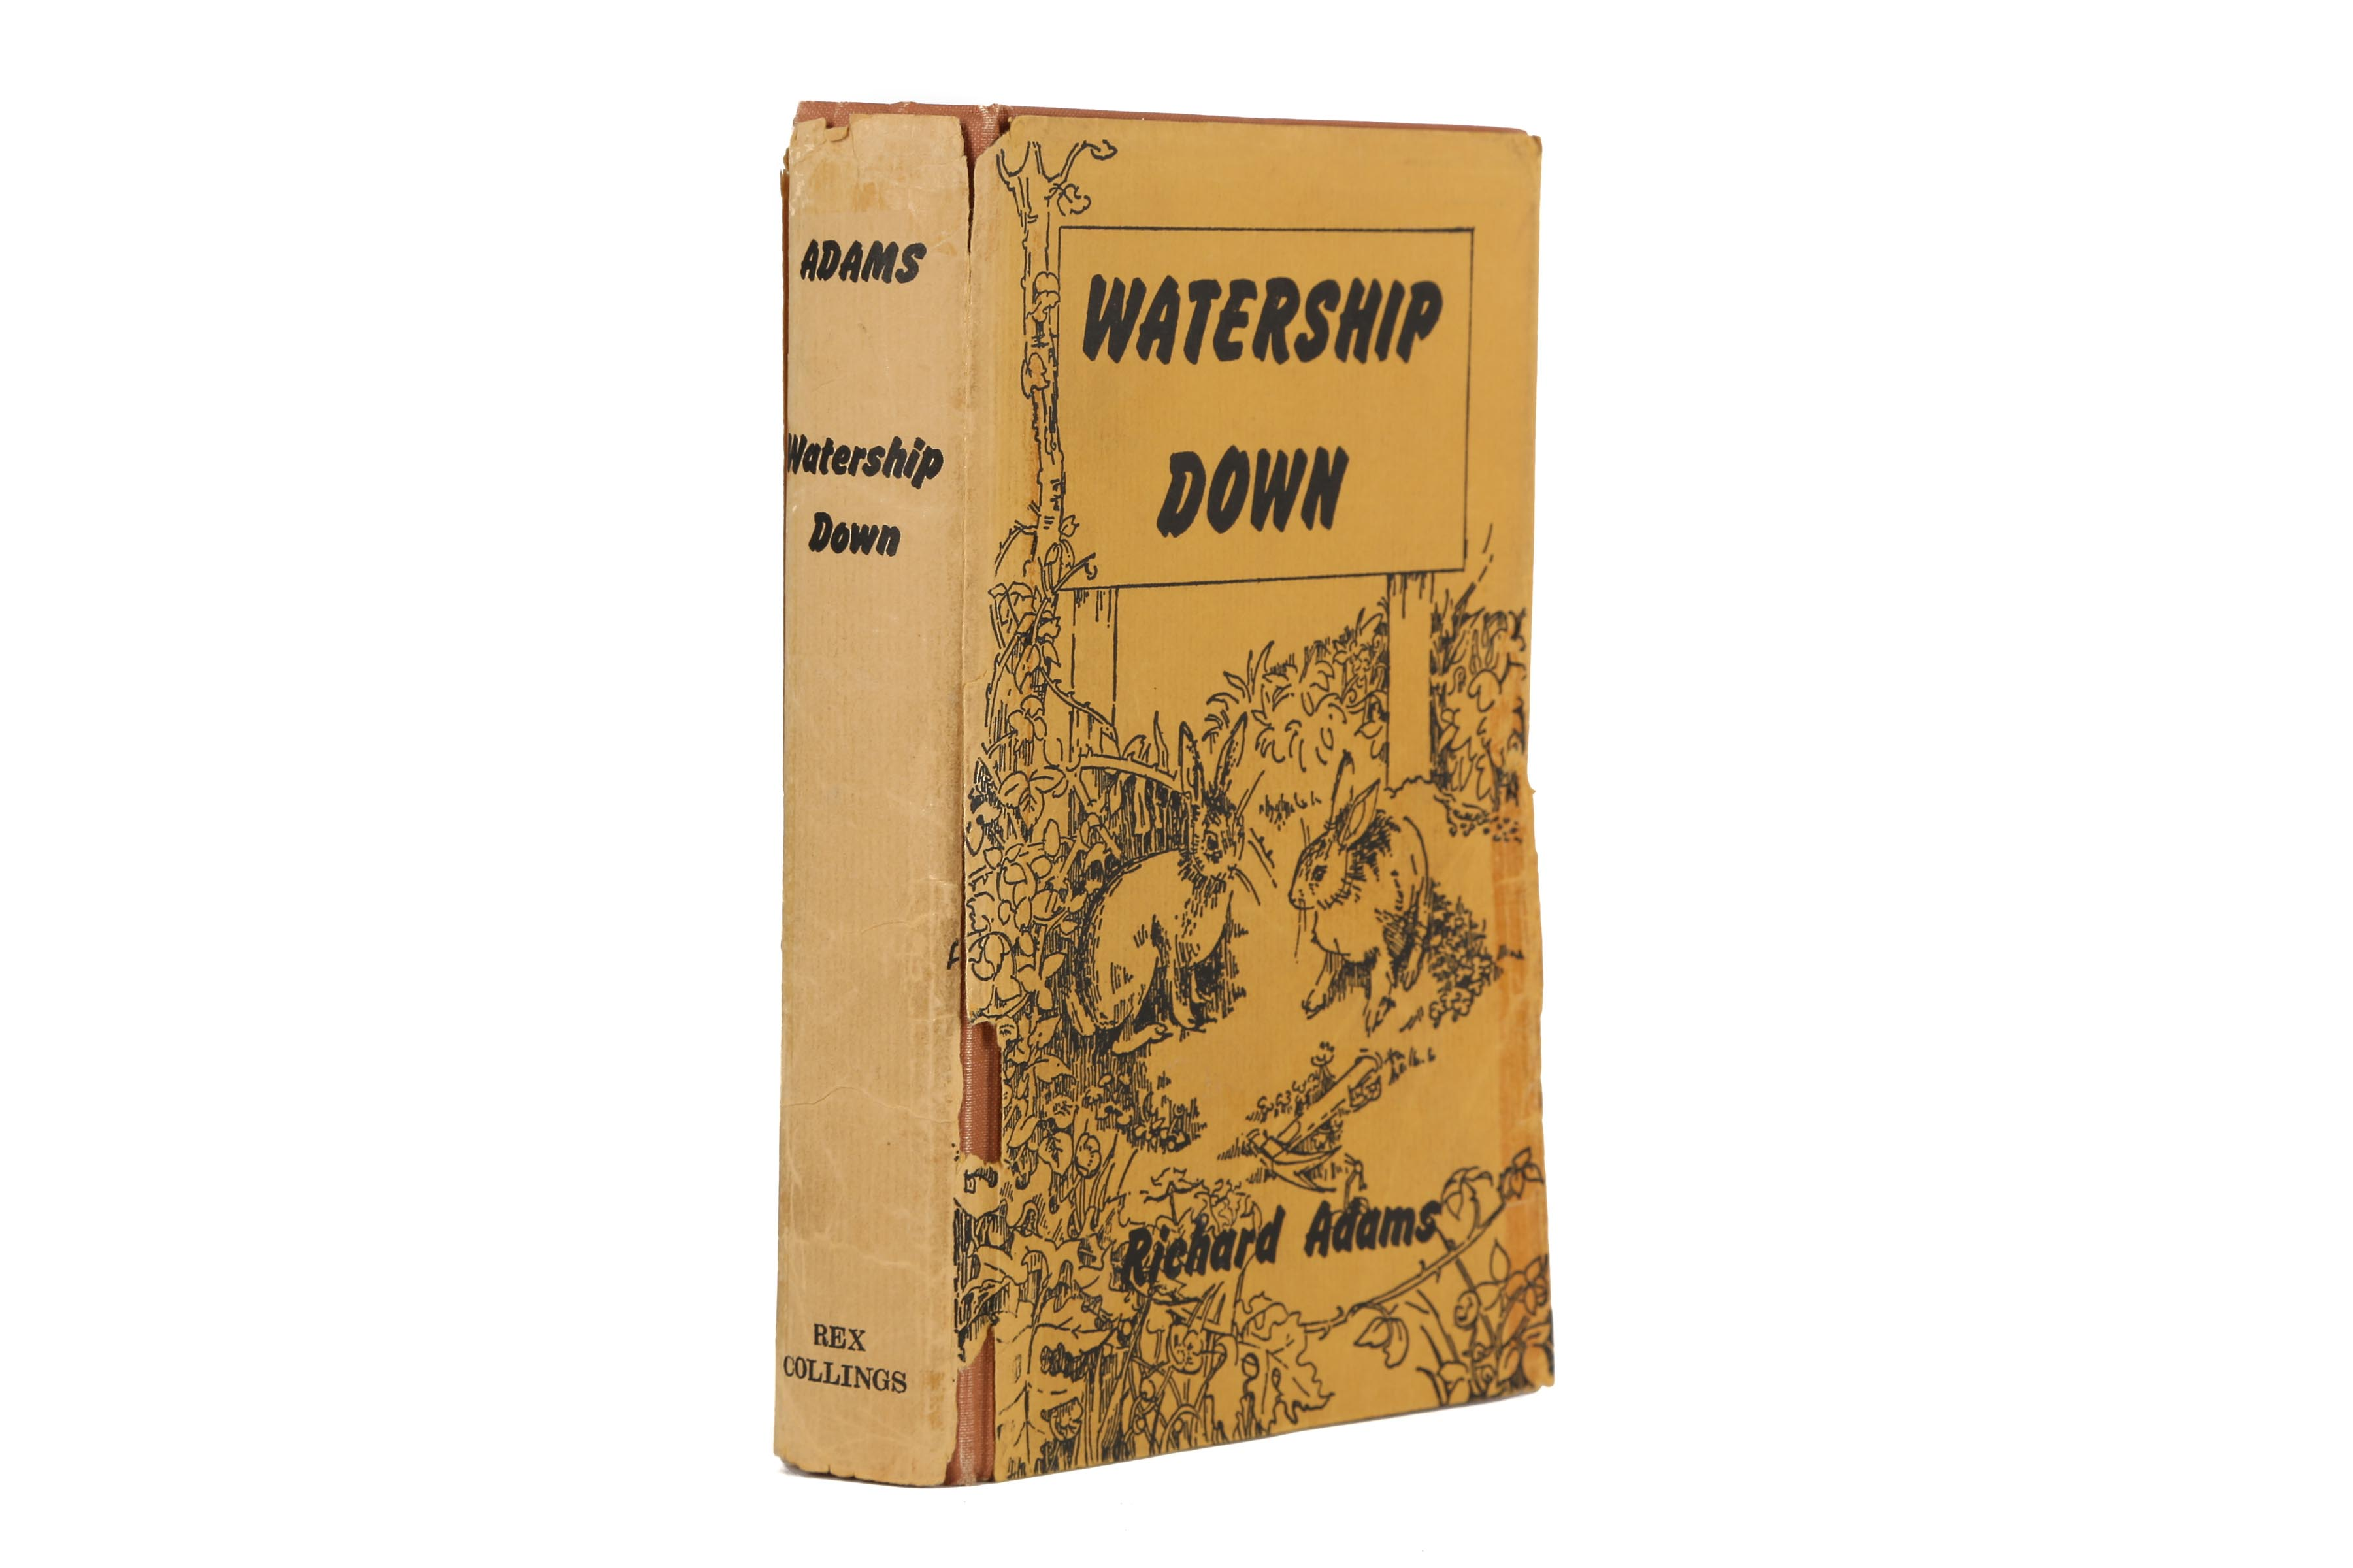 Lot 2 - Adams (Richard) Watership Down, FIRST EDITION, author inscription on front free end paper, slight